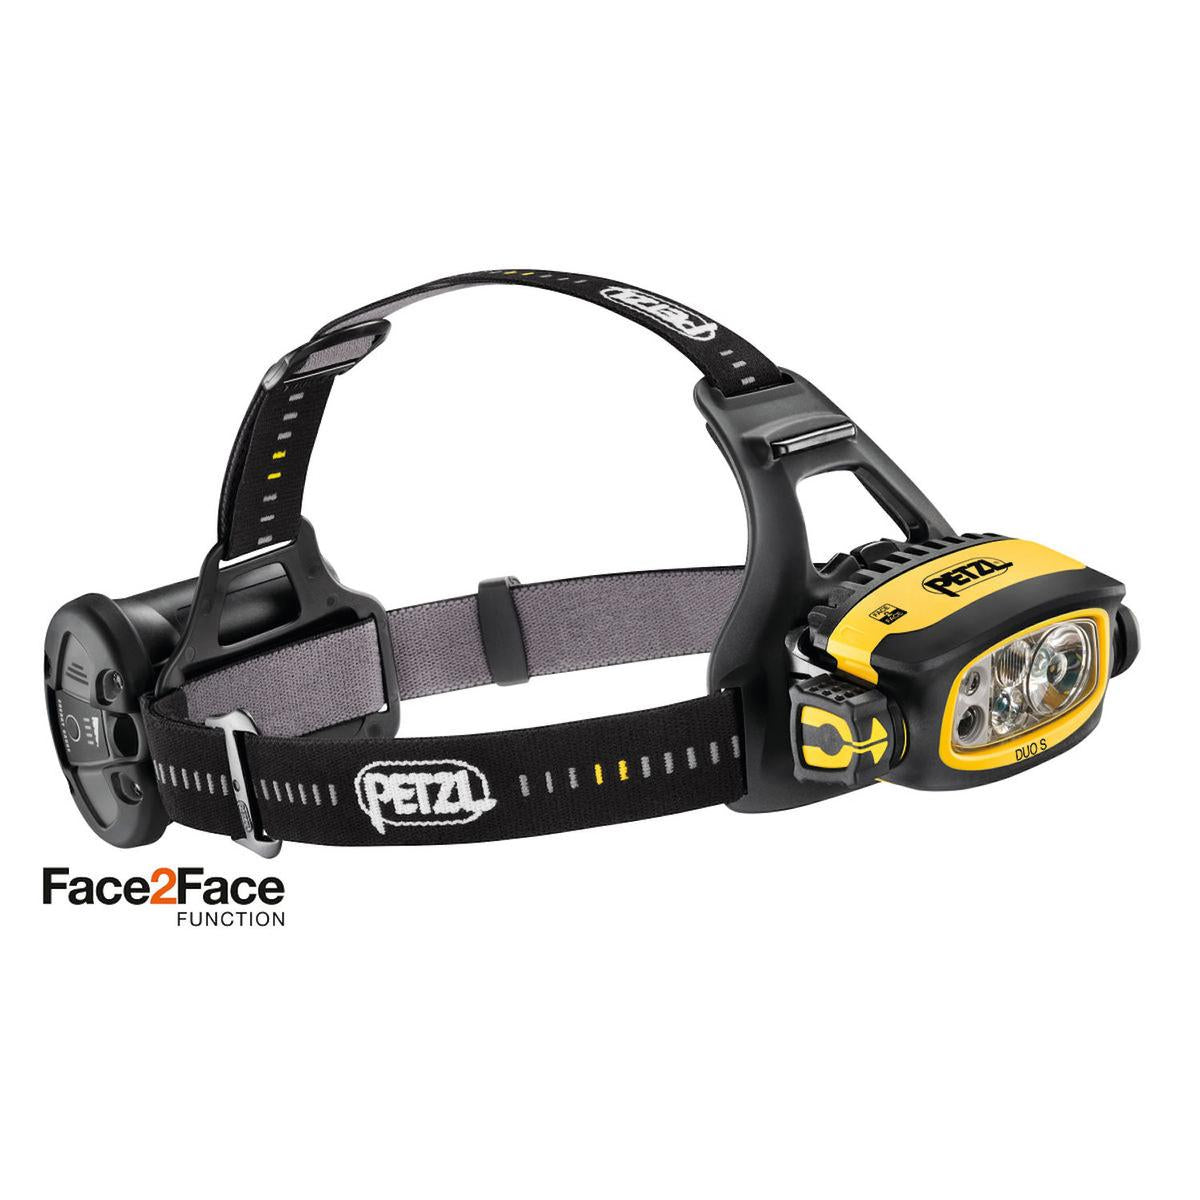 Petzl DUO S 1100 Lumens Headlamp